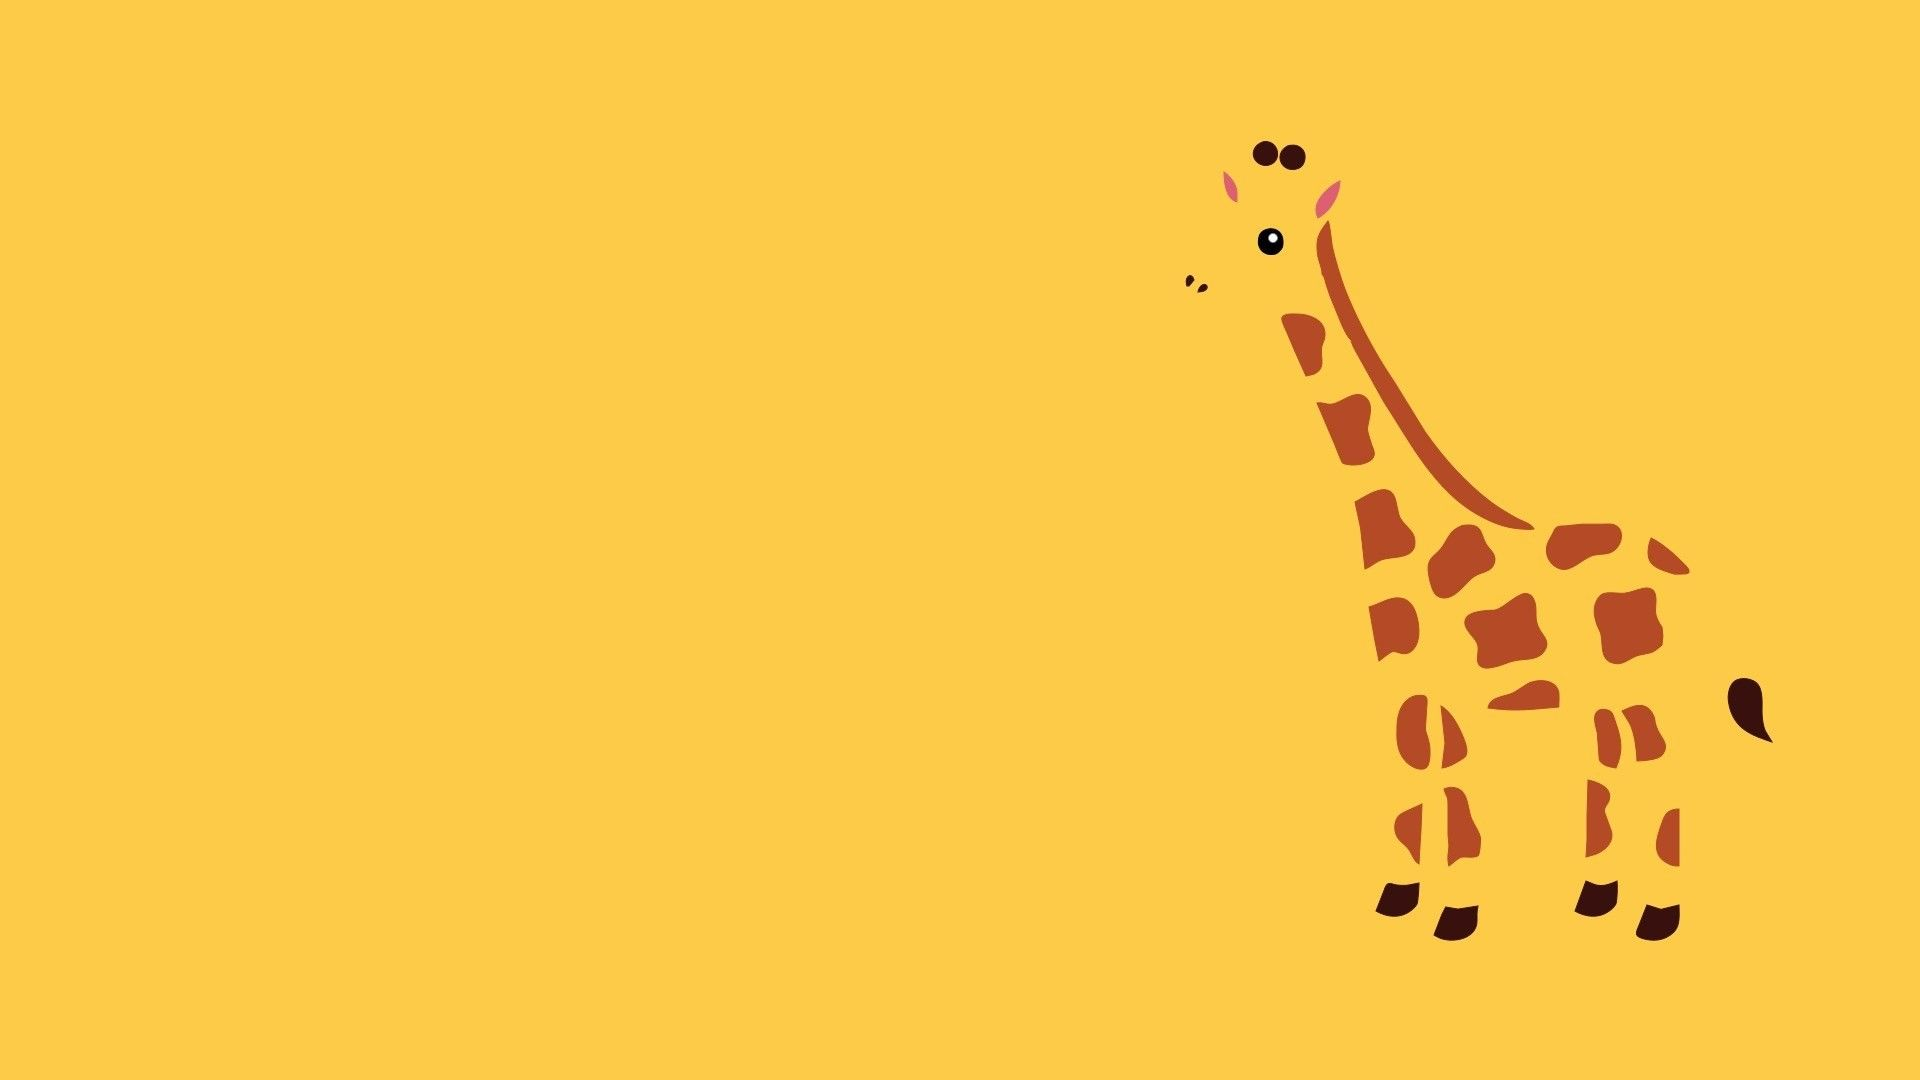 Wallpaper clipart giraffe Backgrounds Wallpaper Cave Wallpapers HD